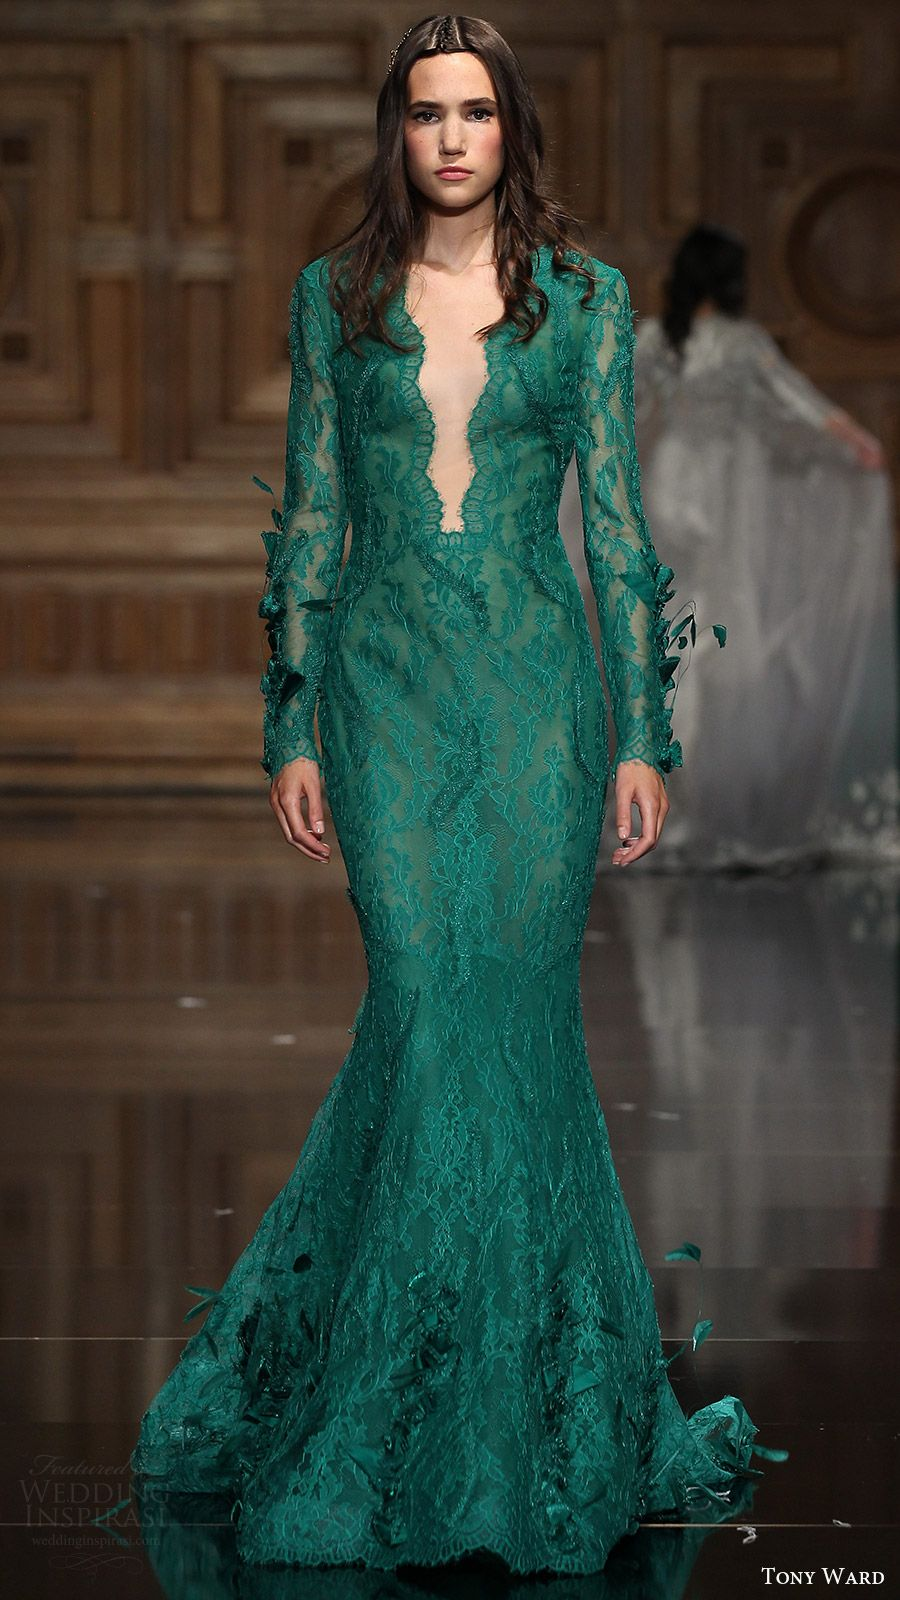 Tony ward fallwinter couture collection sleeve green